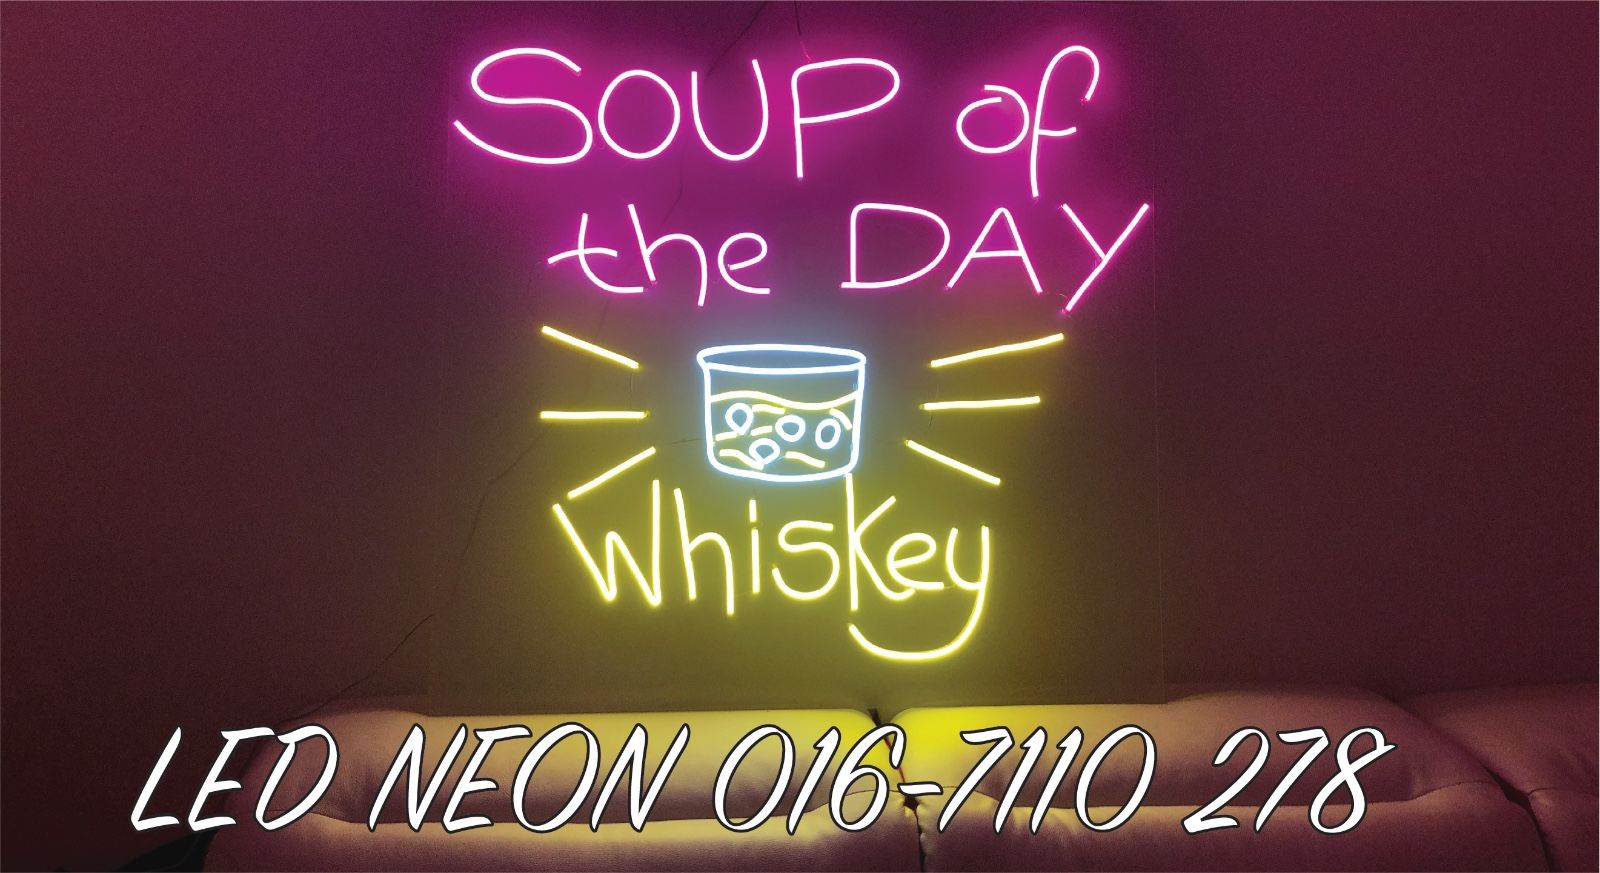 LED NEON Whiskey signage